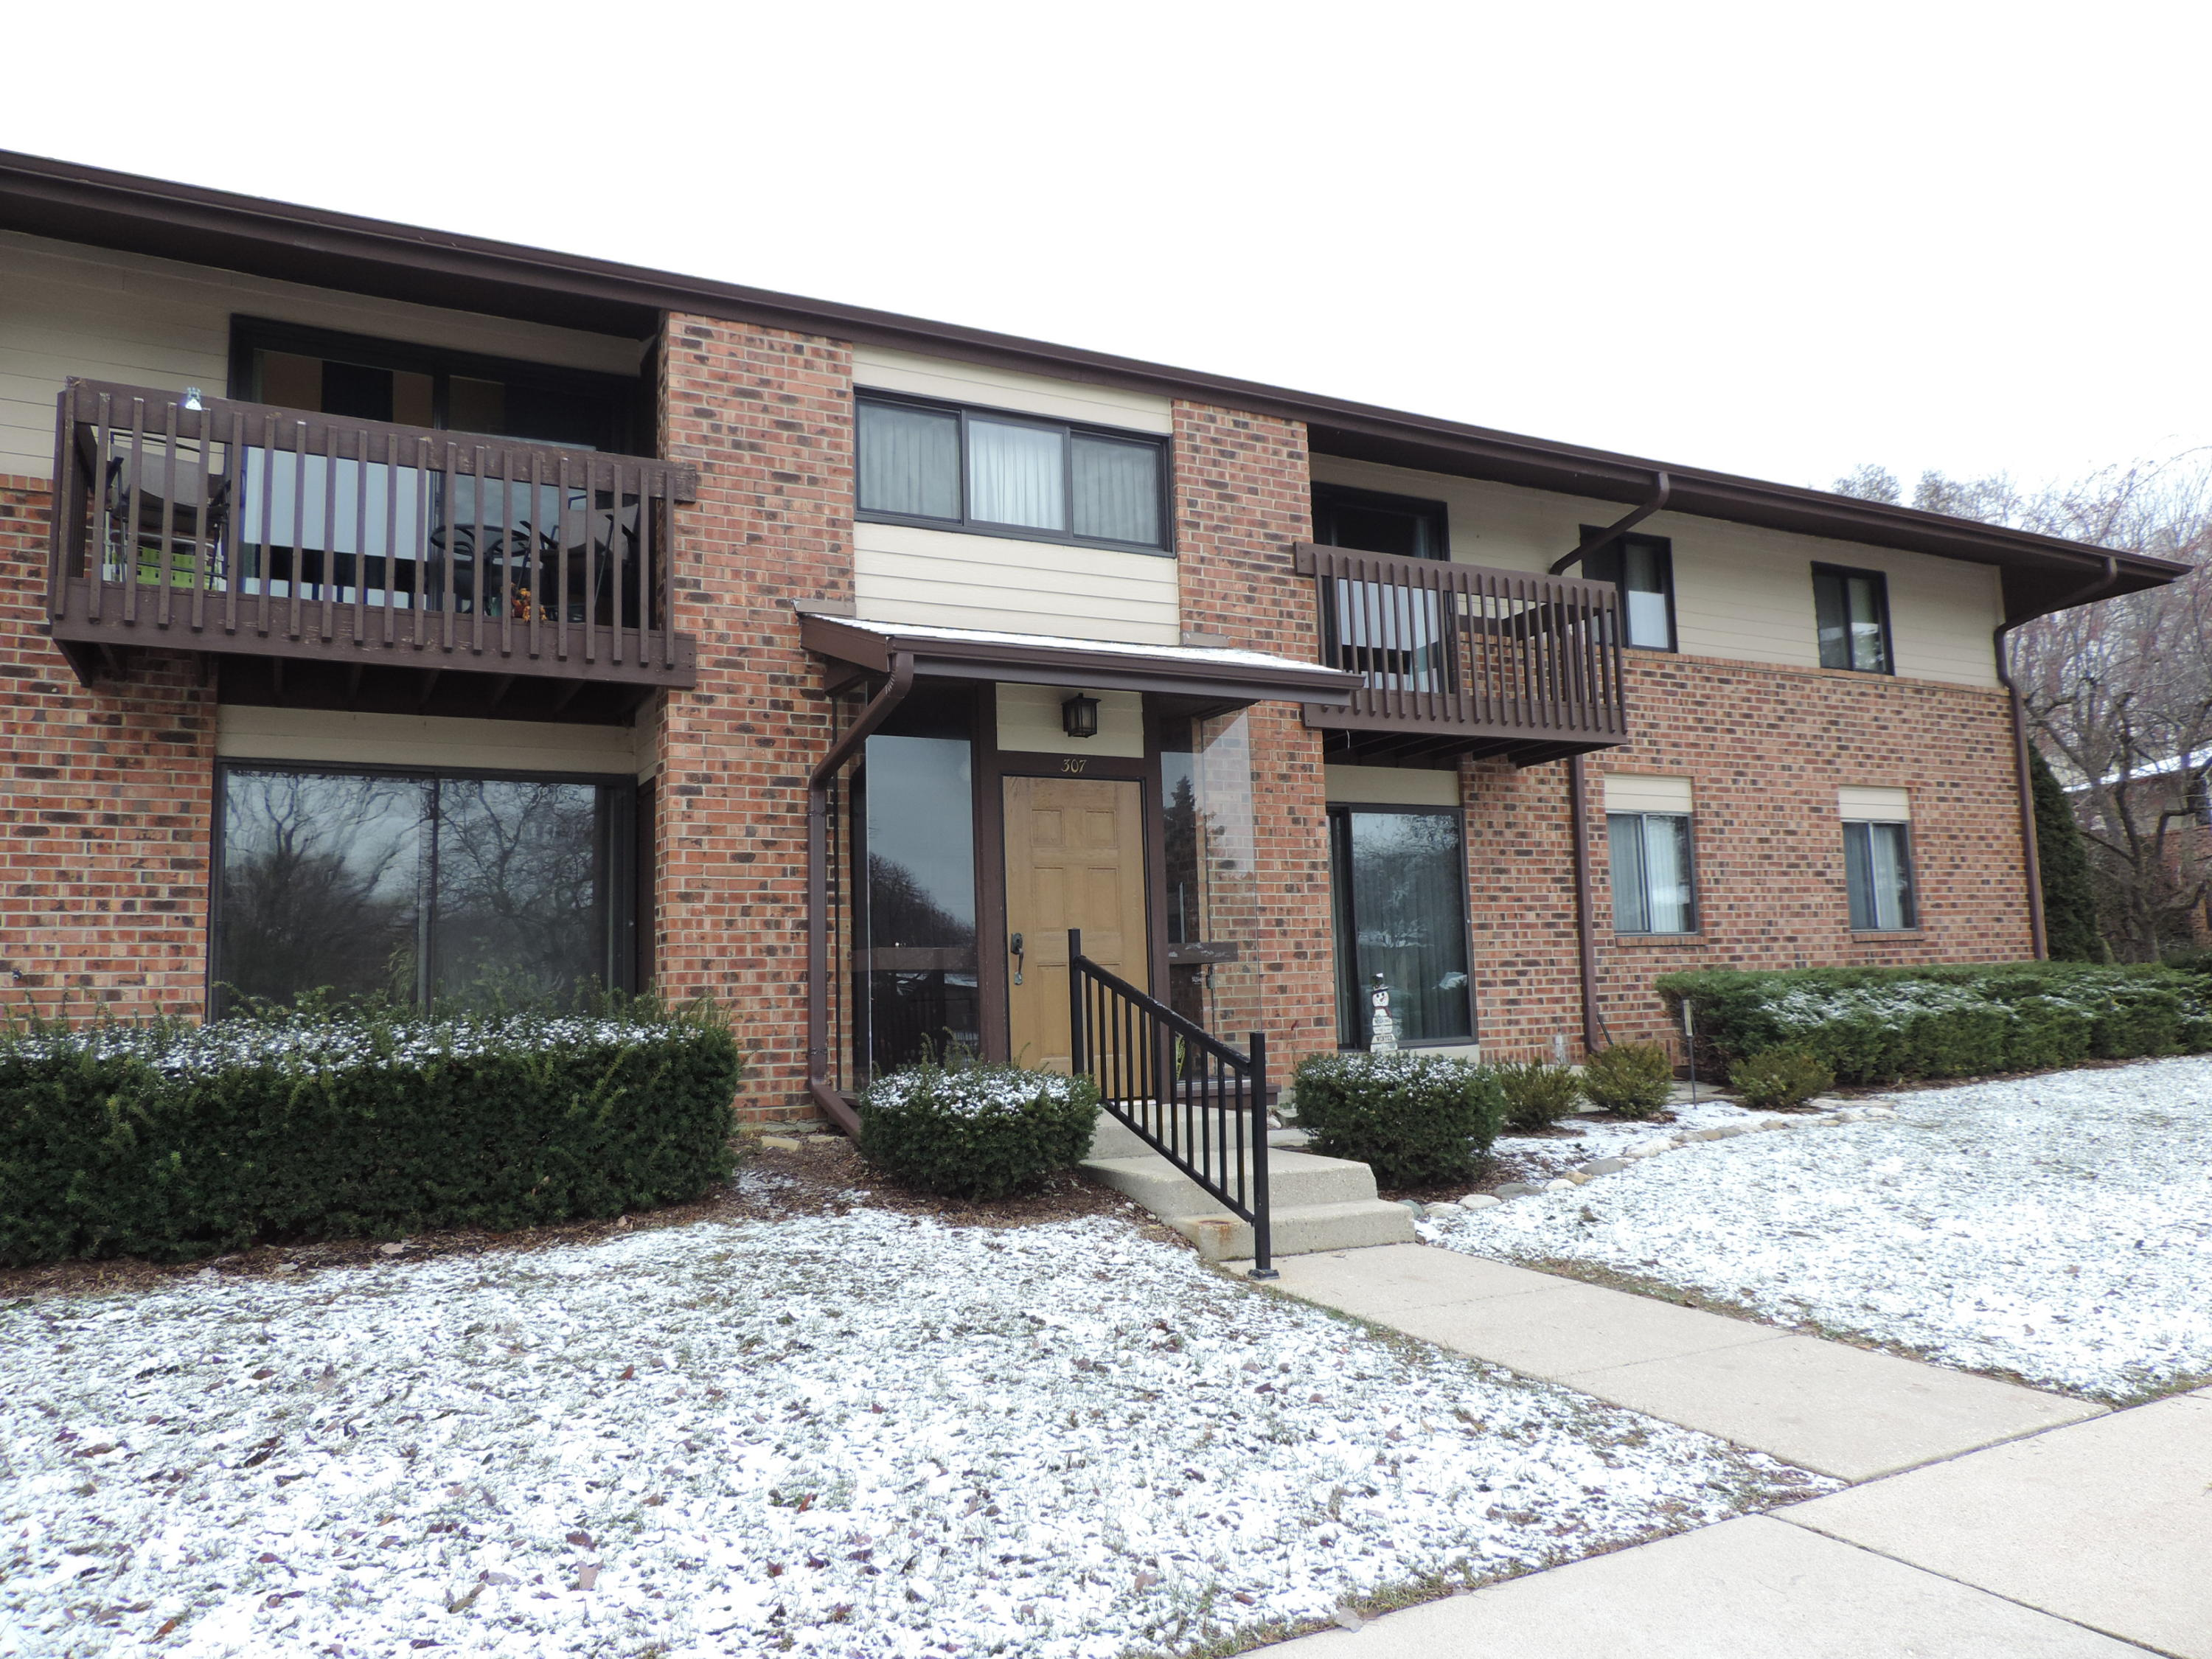 307 Park Hill Dr, Pewaukee, Wisconsin 53072, 2 Bedrooms Bedrooms, 6 Rooms Rooms,2 BathroomsBathrooms,Condominiums,For Sale,Park Hill Dr,2,1615940